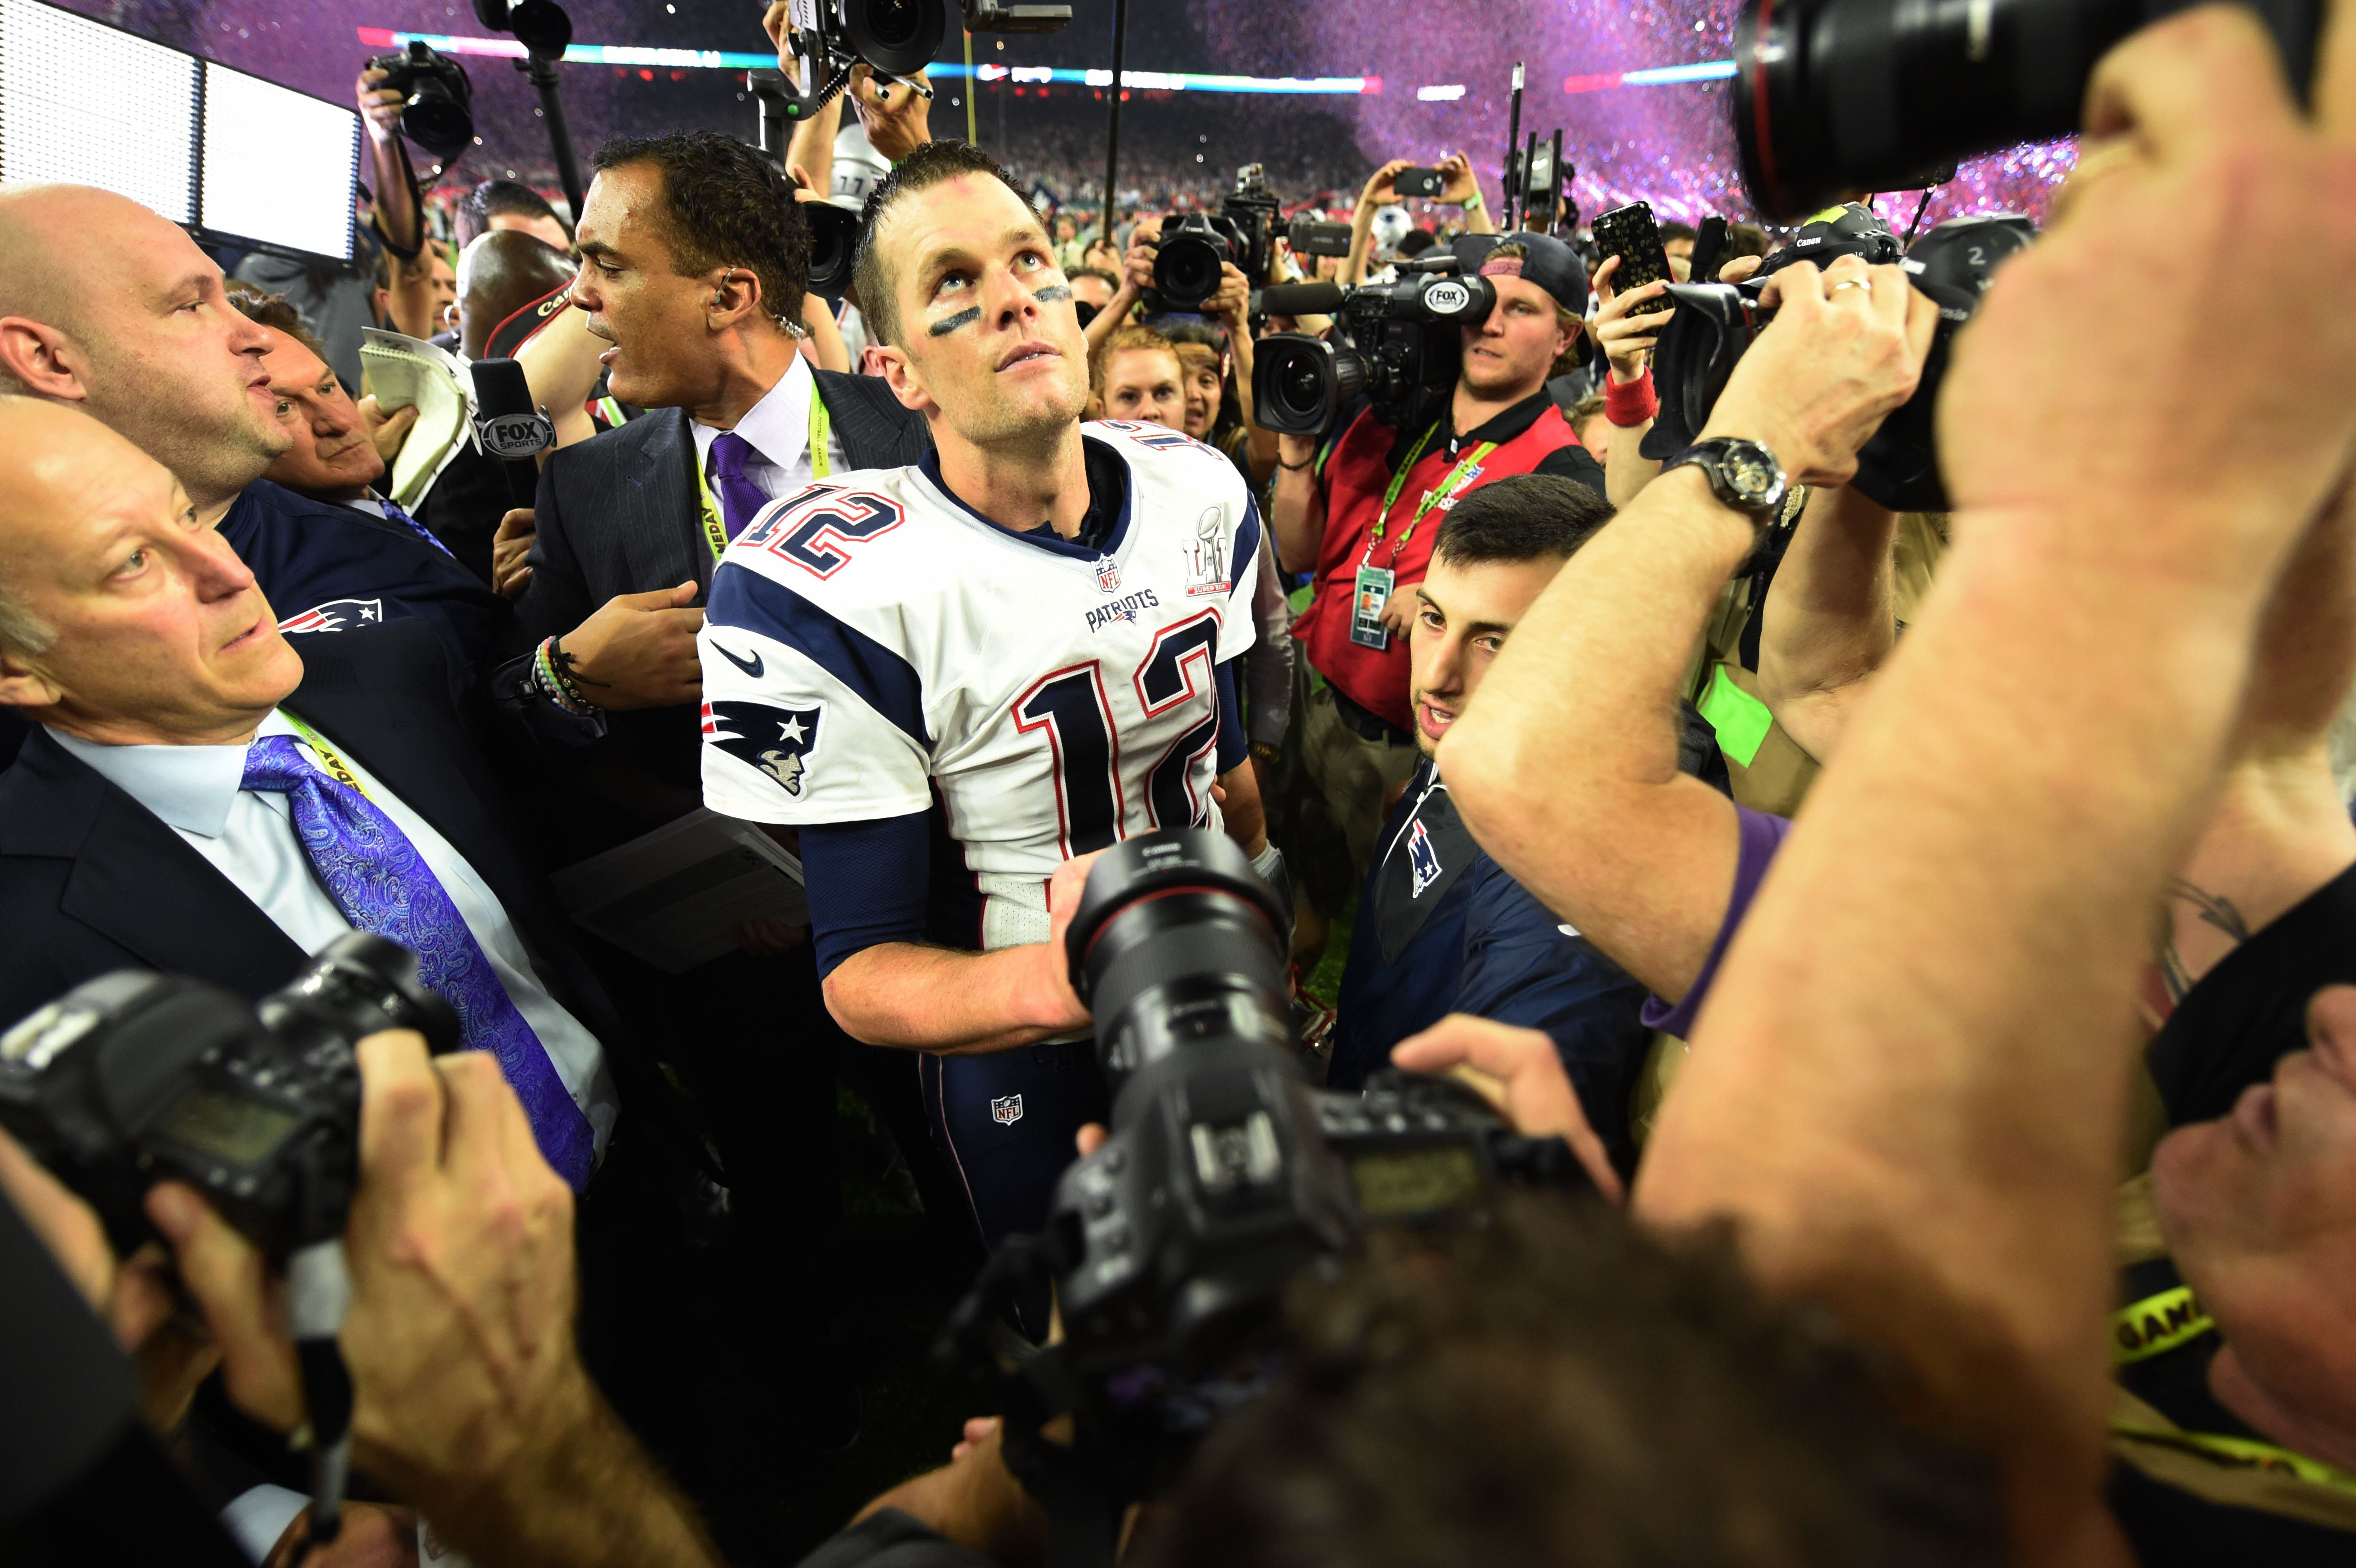 Tom Brady #12 of the New England Patriots looks on after defeating the Atlanta Falcons during Super Bowl 51 at NRG Stadium on February 5, 2017 in Houston, Texas.